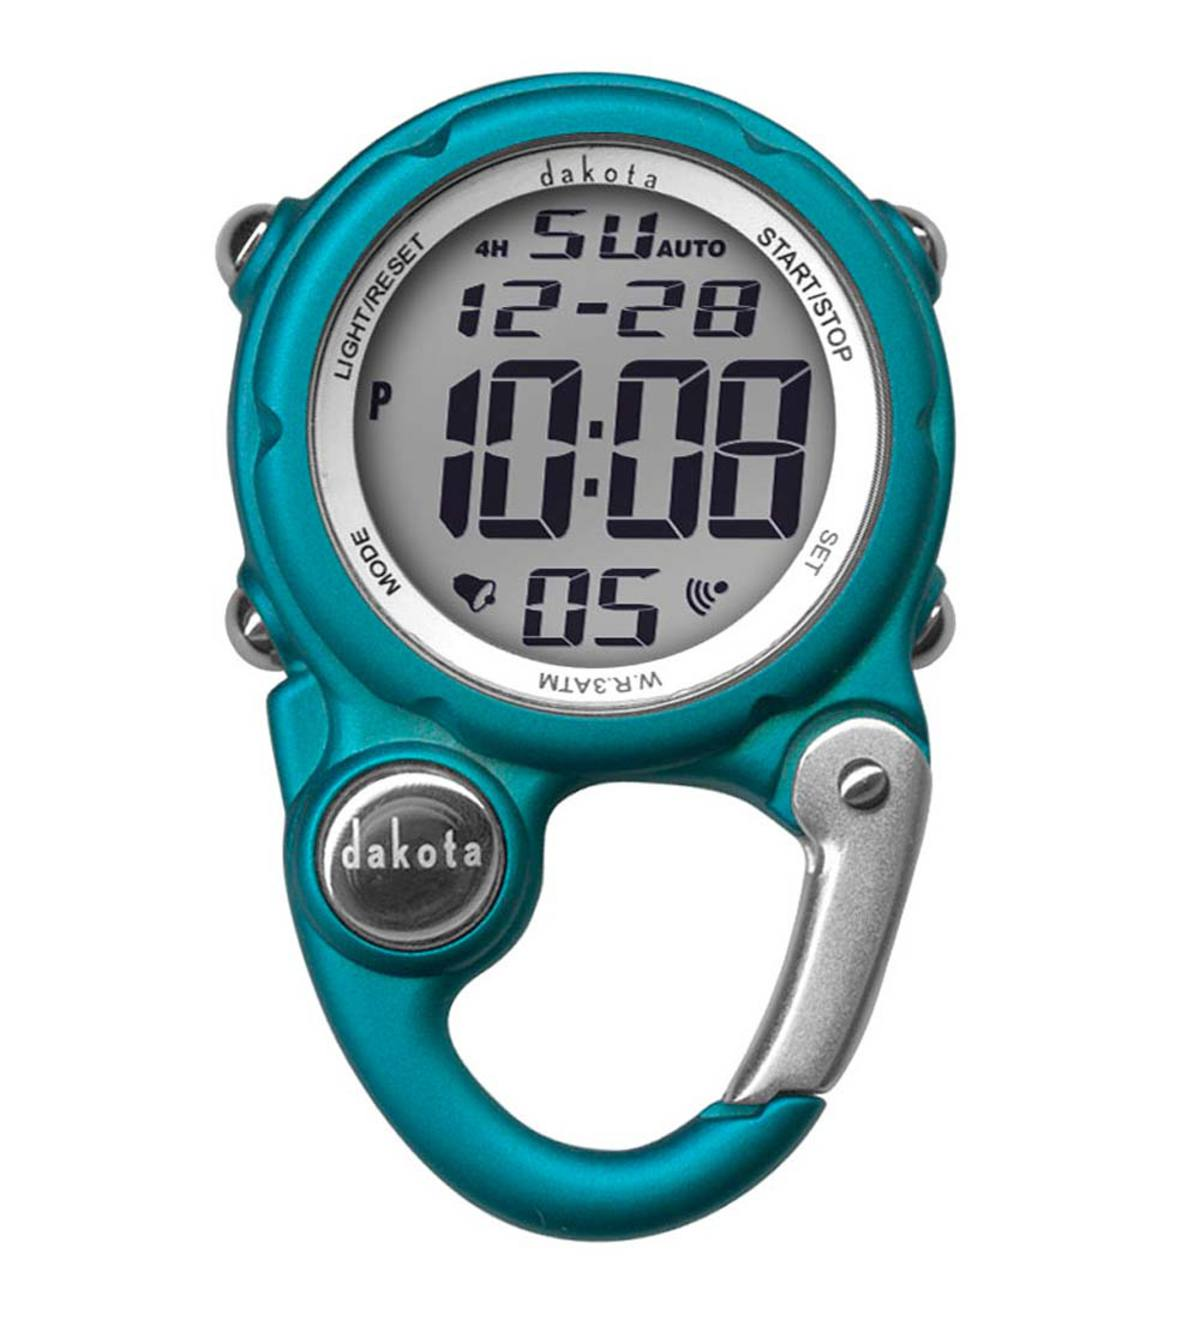 Mini Clip Digital Watch - Aqua